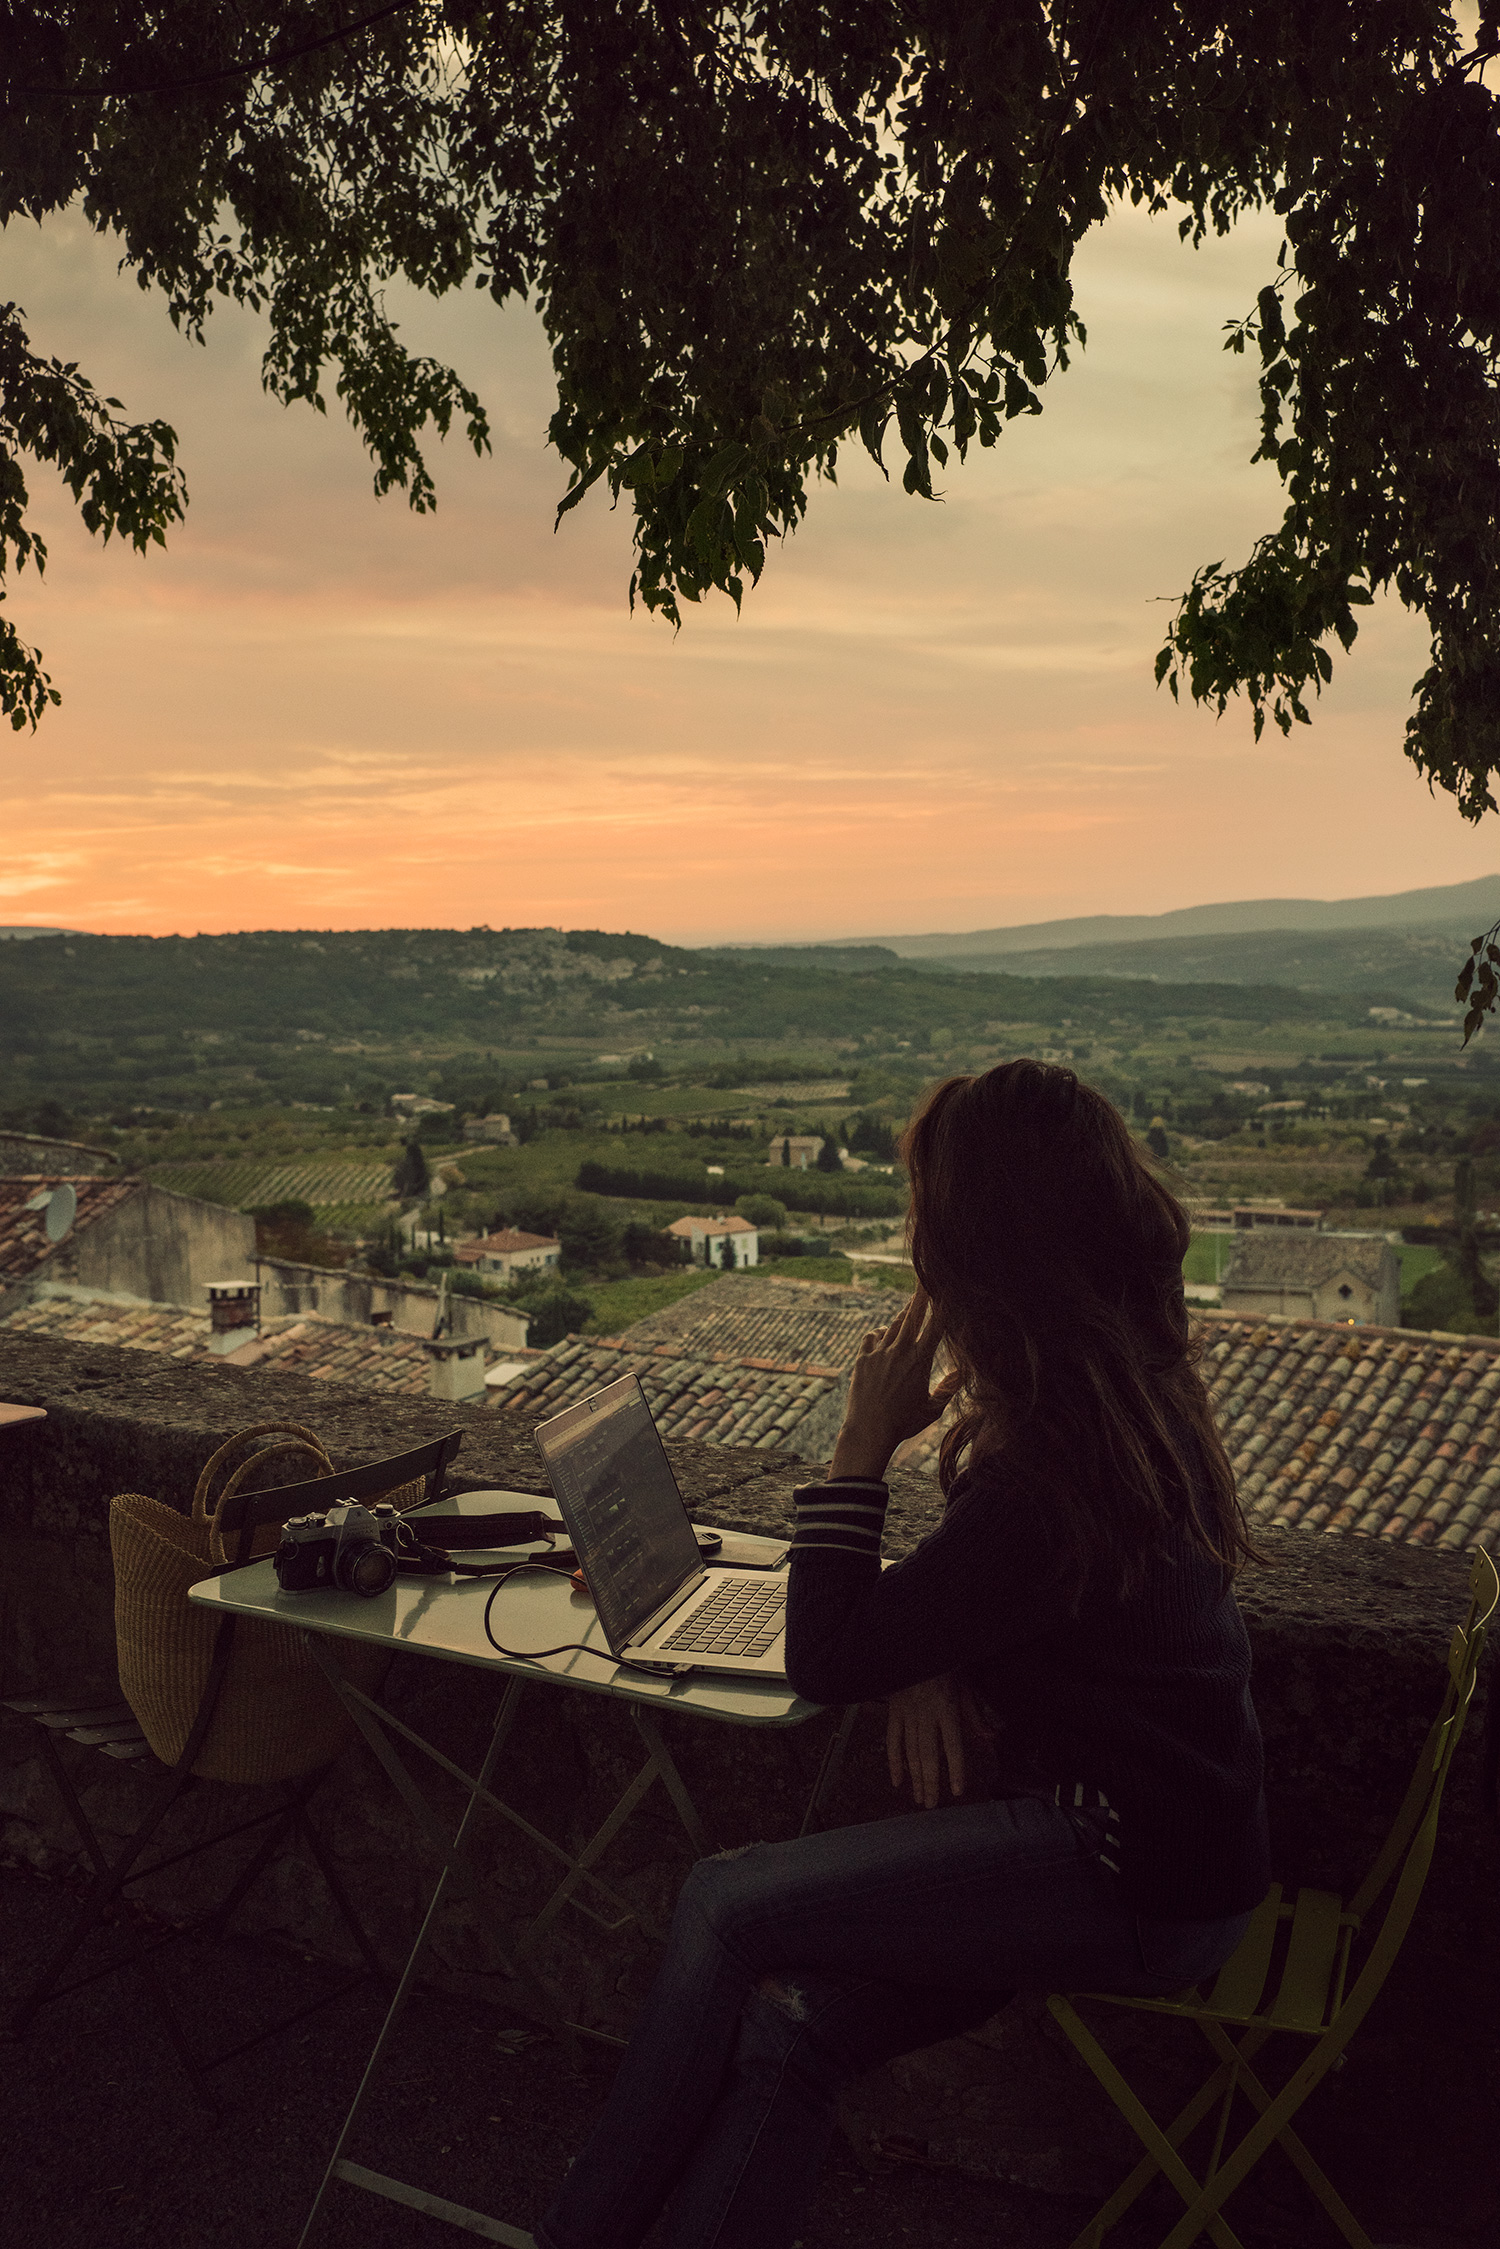 Sunset vista from the small Provencal town of Bonnieux, France